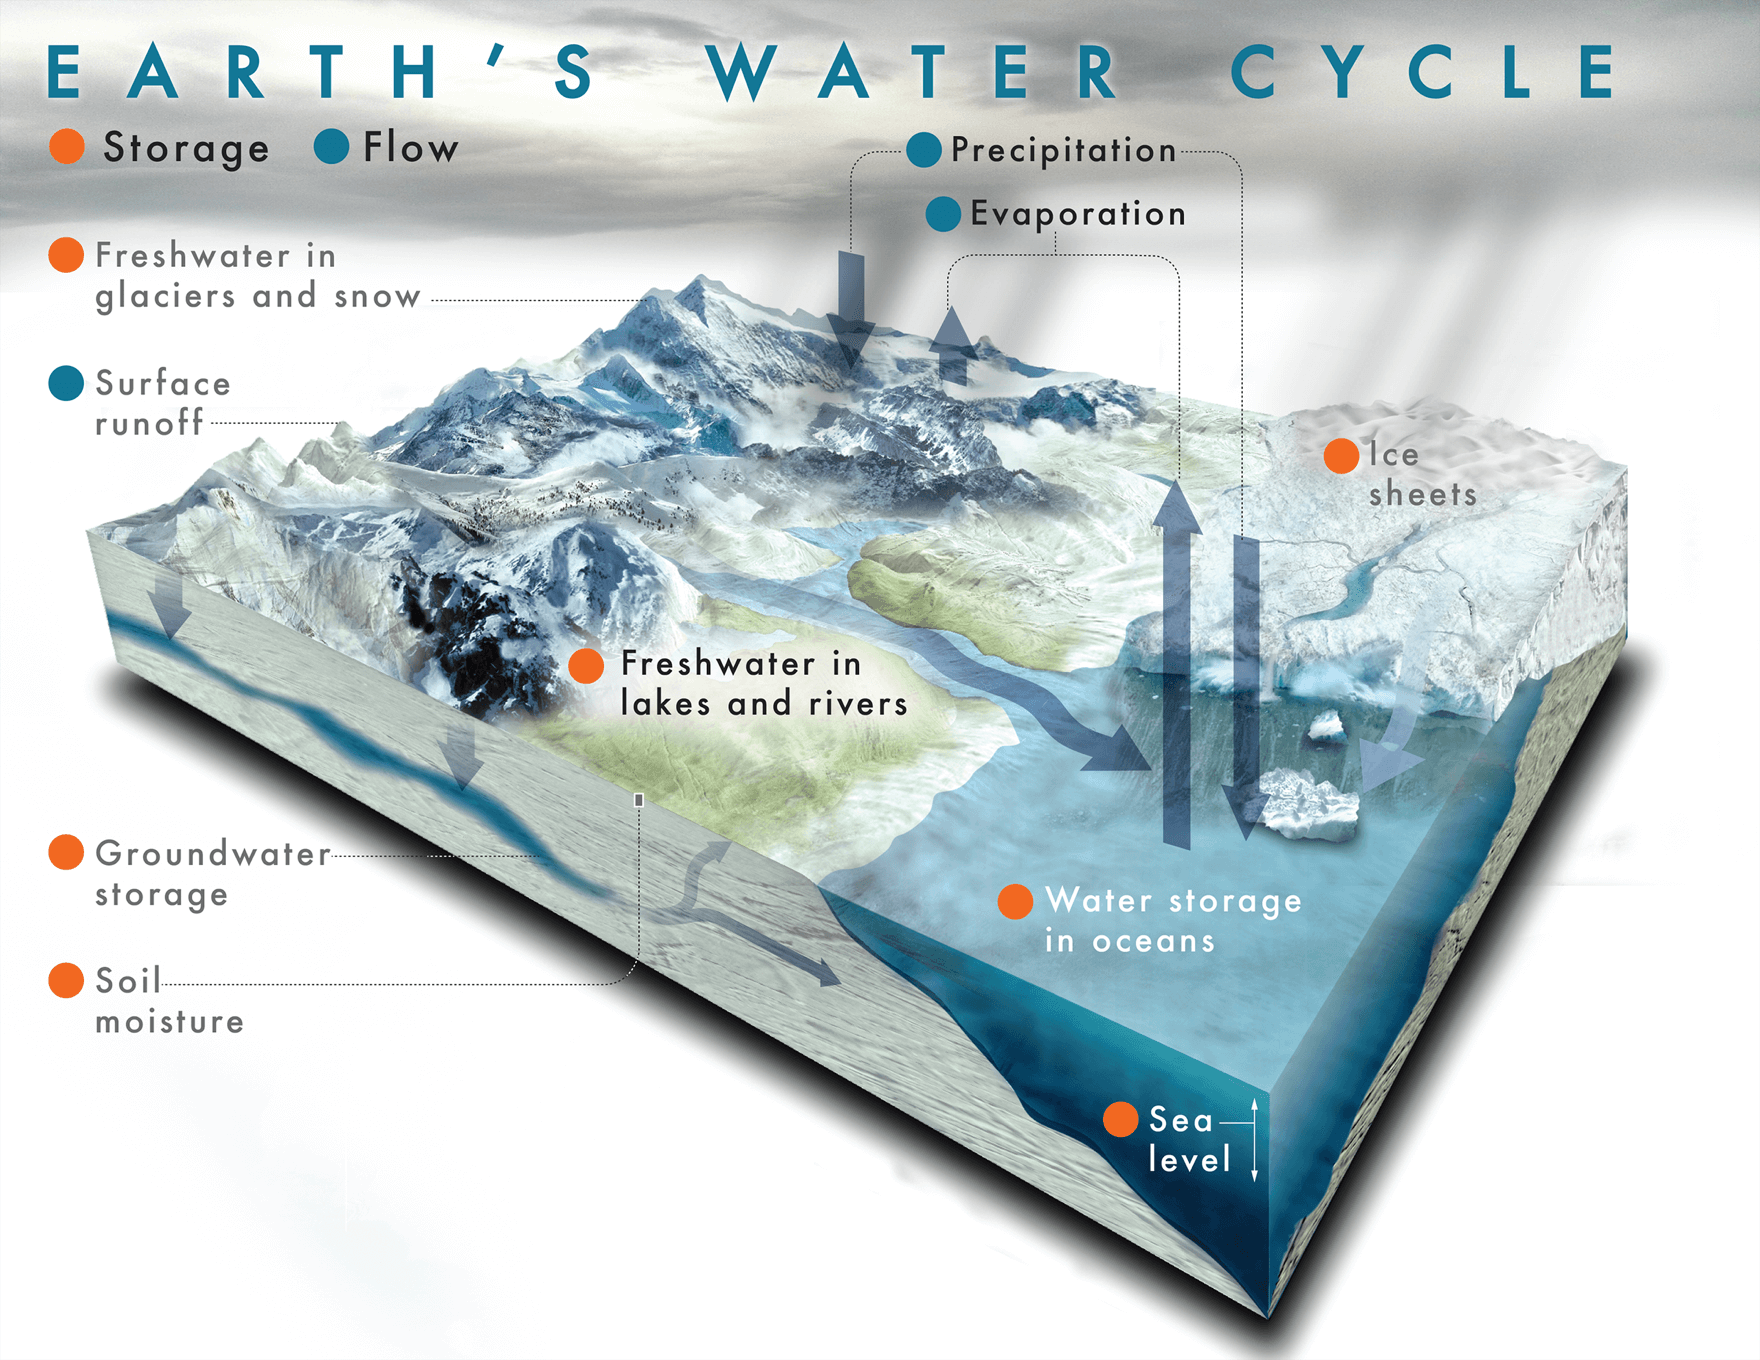 An illustration of the water cycle showing how water travels from rivers and streams to clouds to snow and back again